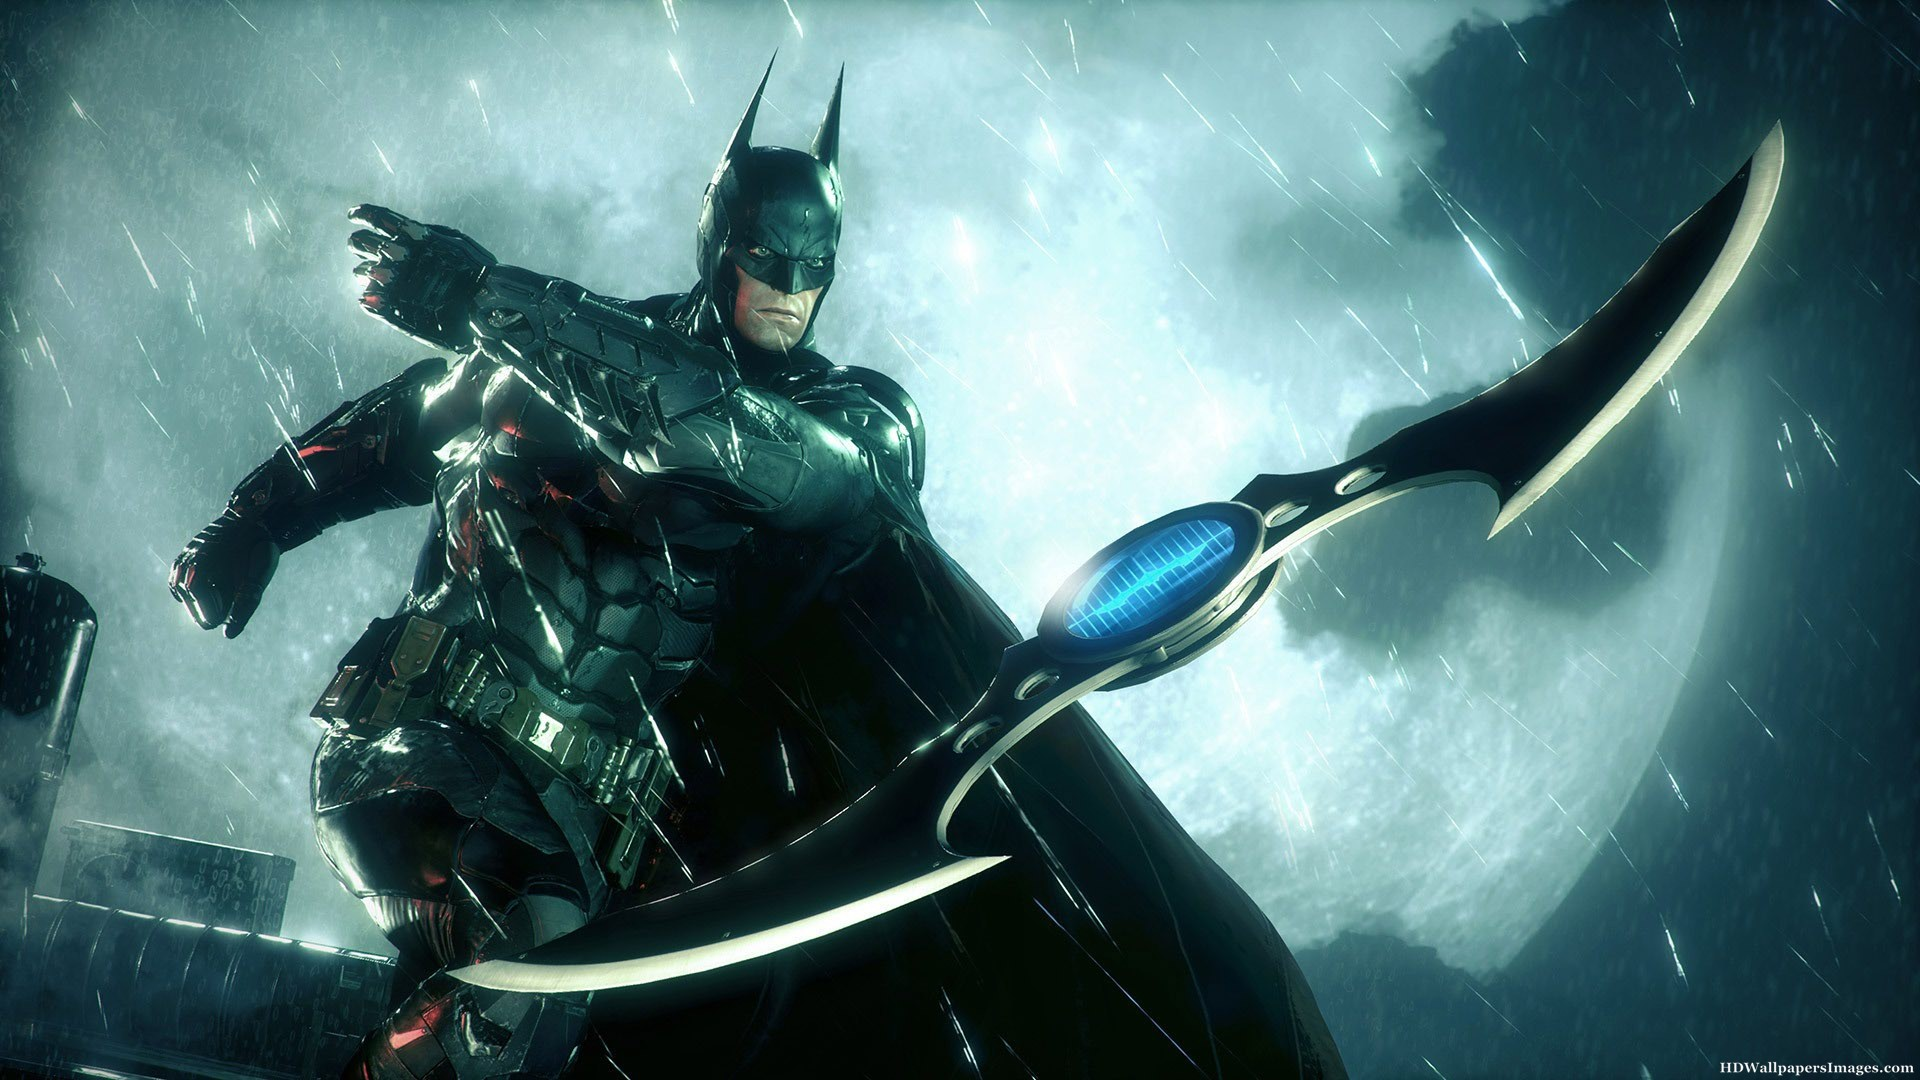 Batman Arkham Knight 2015 HD Wallpapers   HD Wallpaper 1920x1080